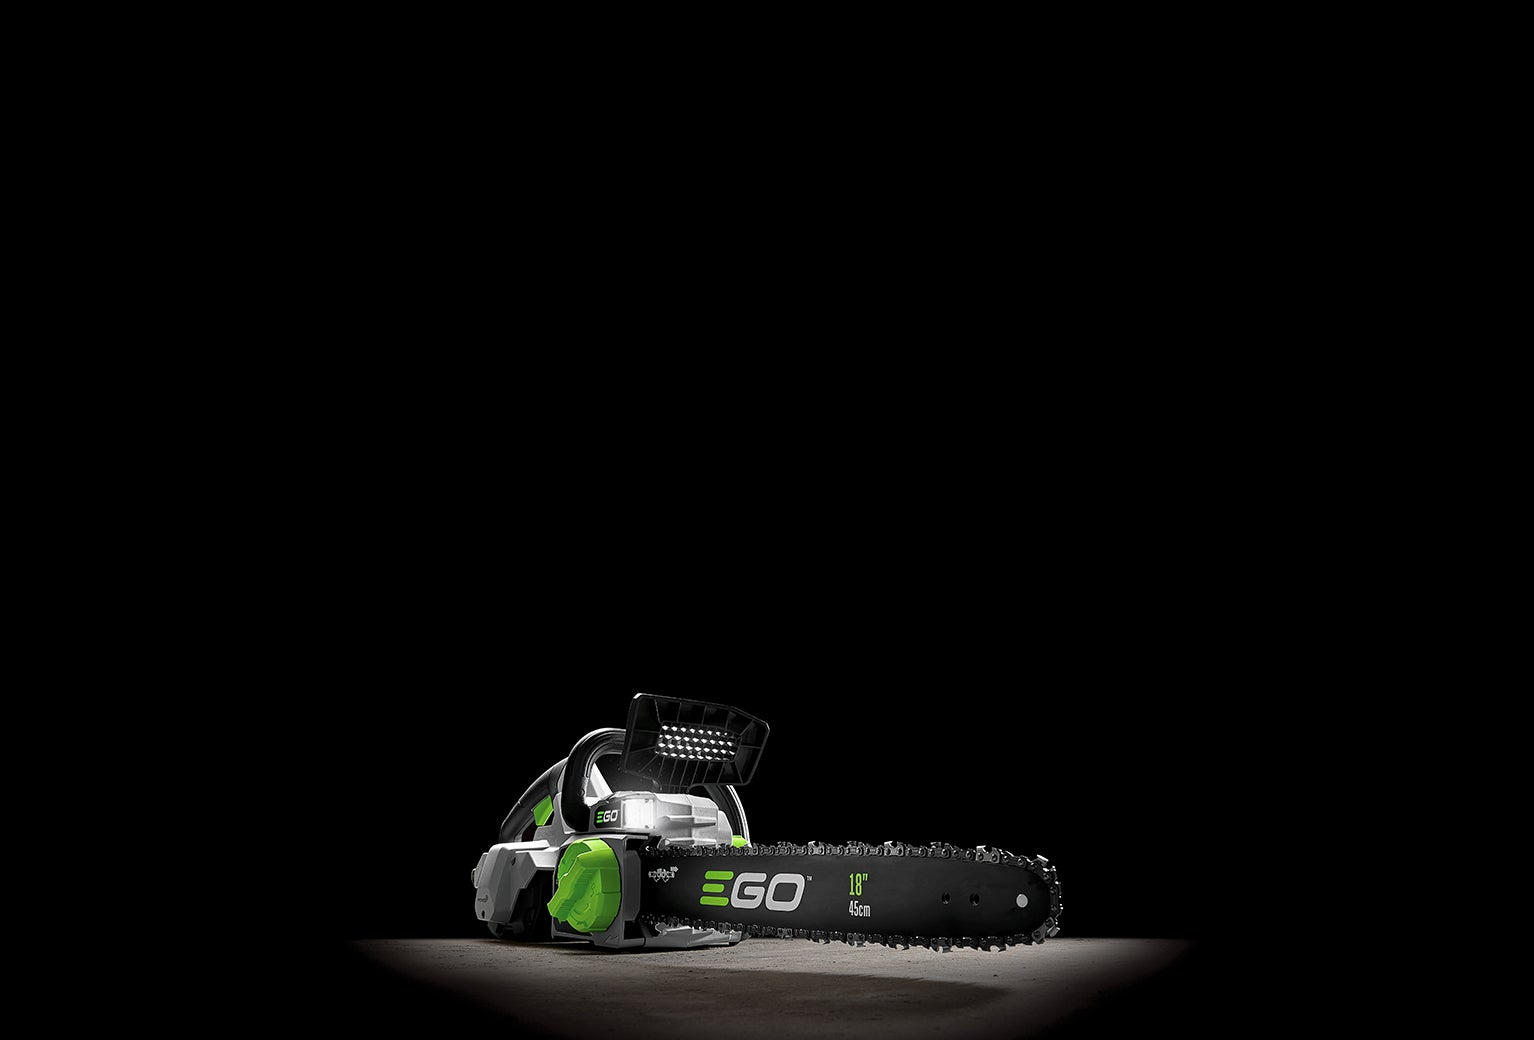 Introducing the all new EGO Power+ Chainsaw - the latest update from EGO.